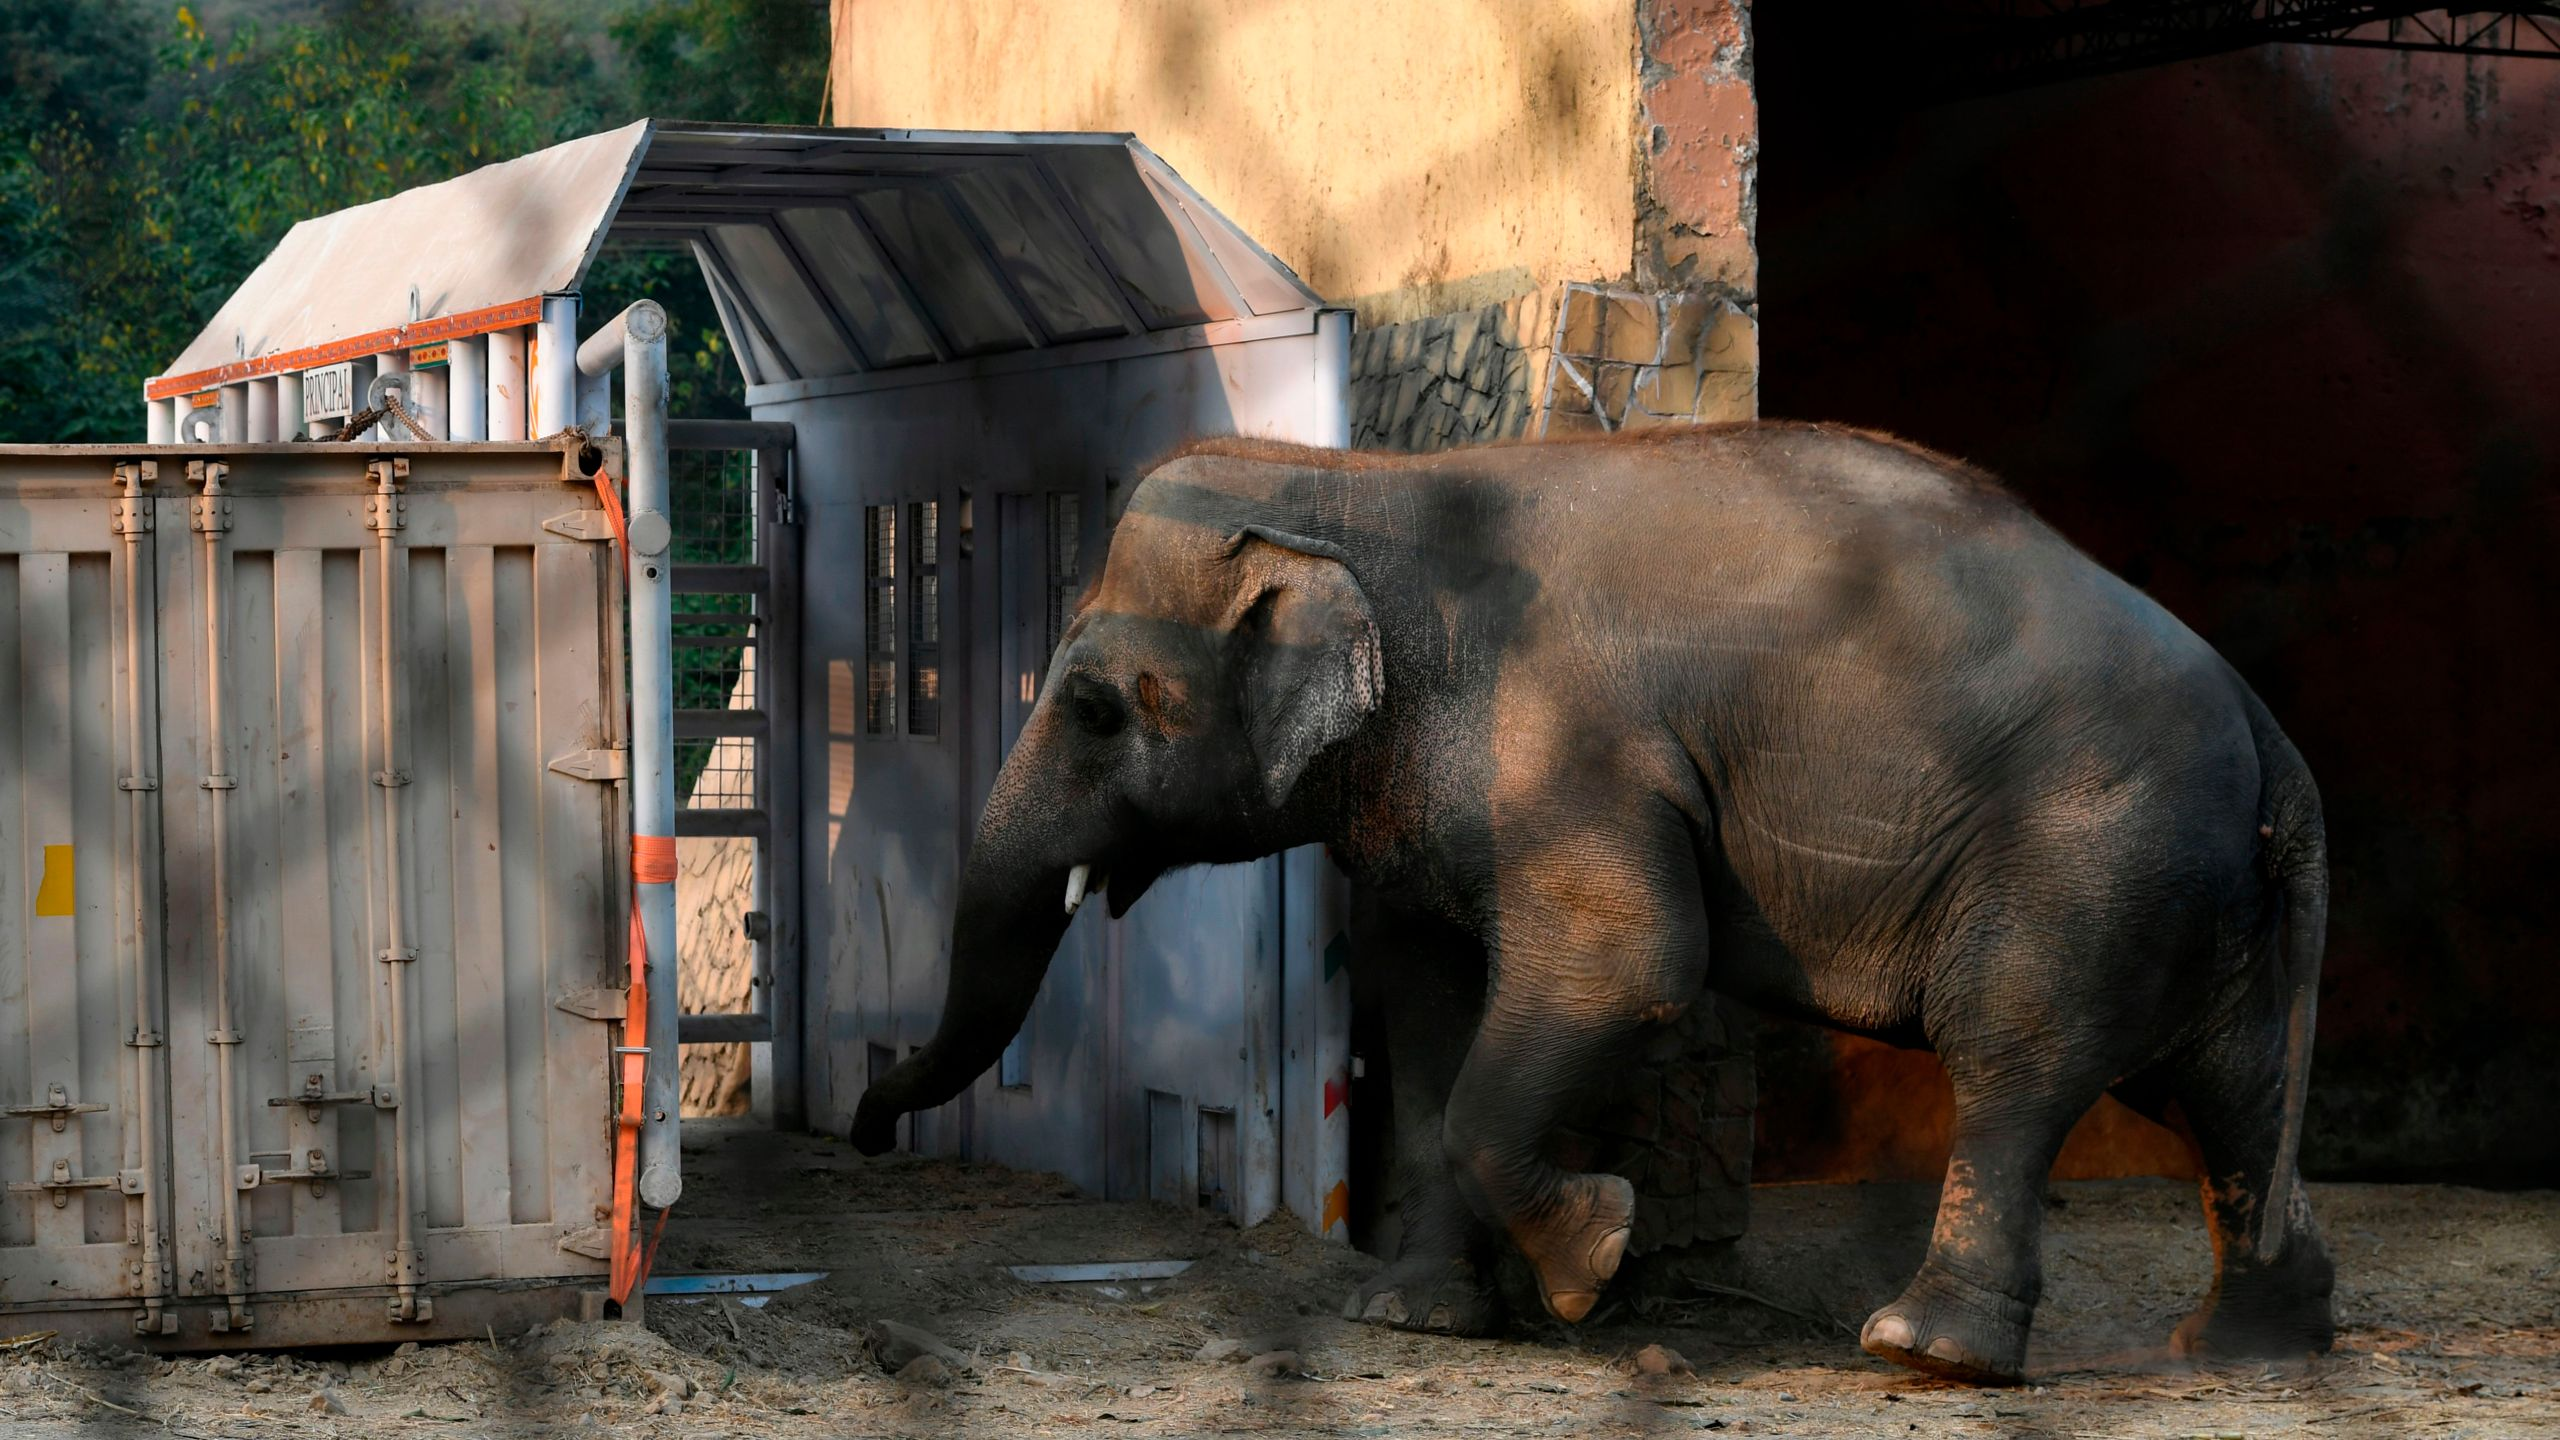 Kavaan, Pakistan's only Asian elephant, enters to feed inside a transport crate to make him habituated before traveling to a sanctuary in Cambodia later this month, at the Marghazar Zoo in Islamabad on November 11, 2020. - The plight of Kaavan, an overweight, 35-year-old bull elephant has drawn international condemnation and highlighted the woeful state of Islamabad's zoo, where conditions are so bad a judge in May ordered all the animals to be moved. (AAMIR QURESHI/AFP via Getty Images)